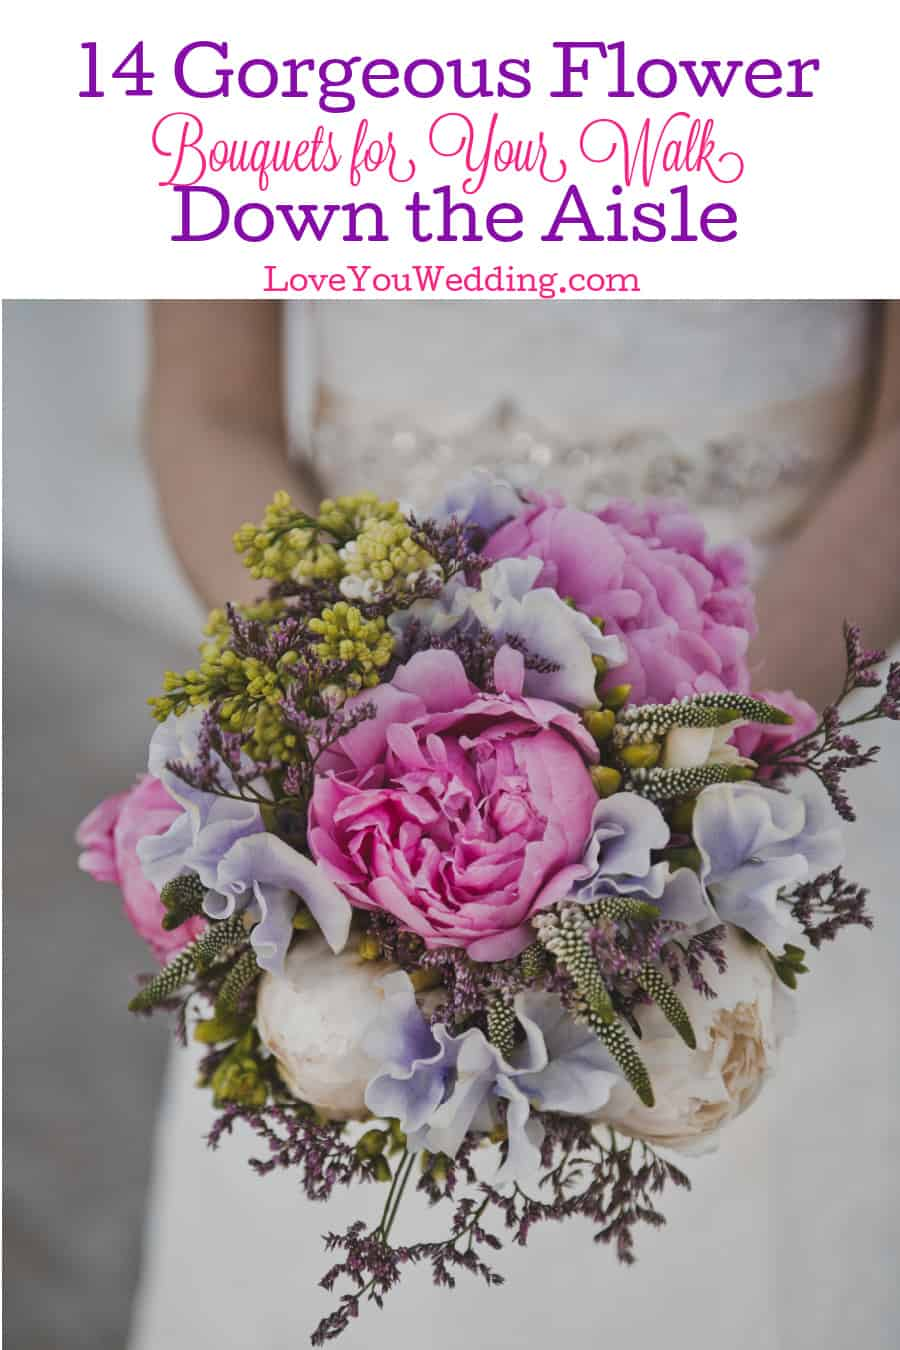 Looking for some of the most stunning wedding bouquets for your walk down the aisle? Check our 14 that totally took our breath away!